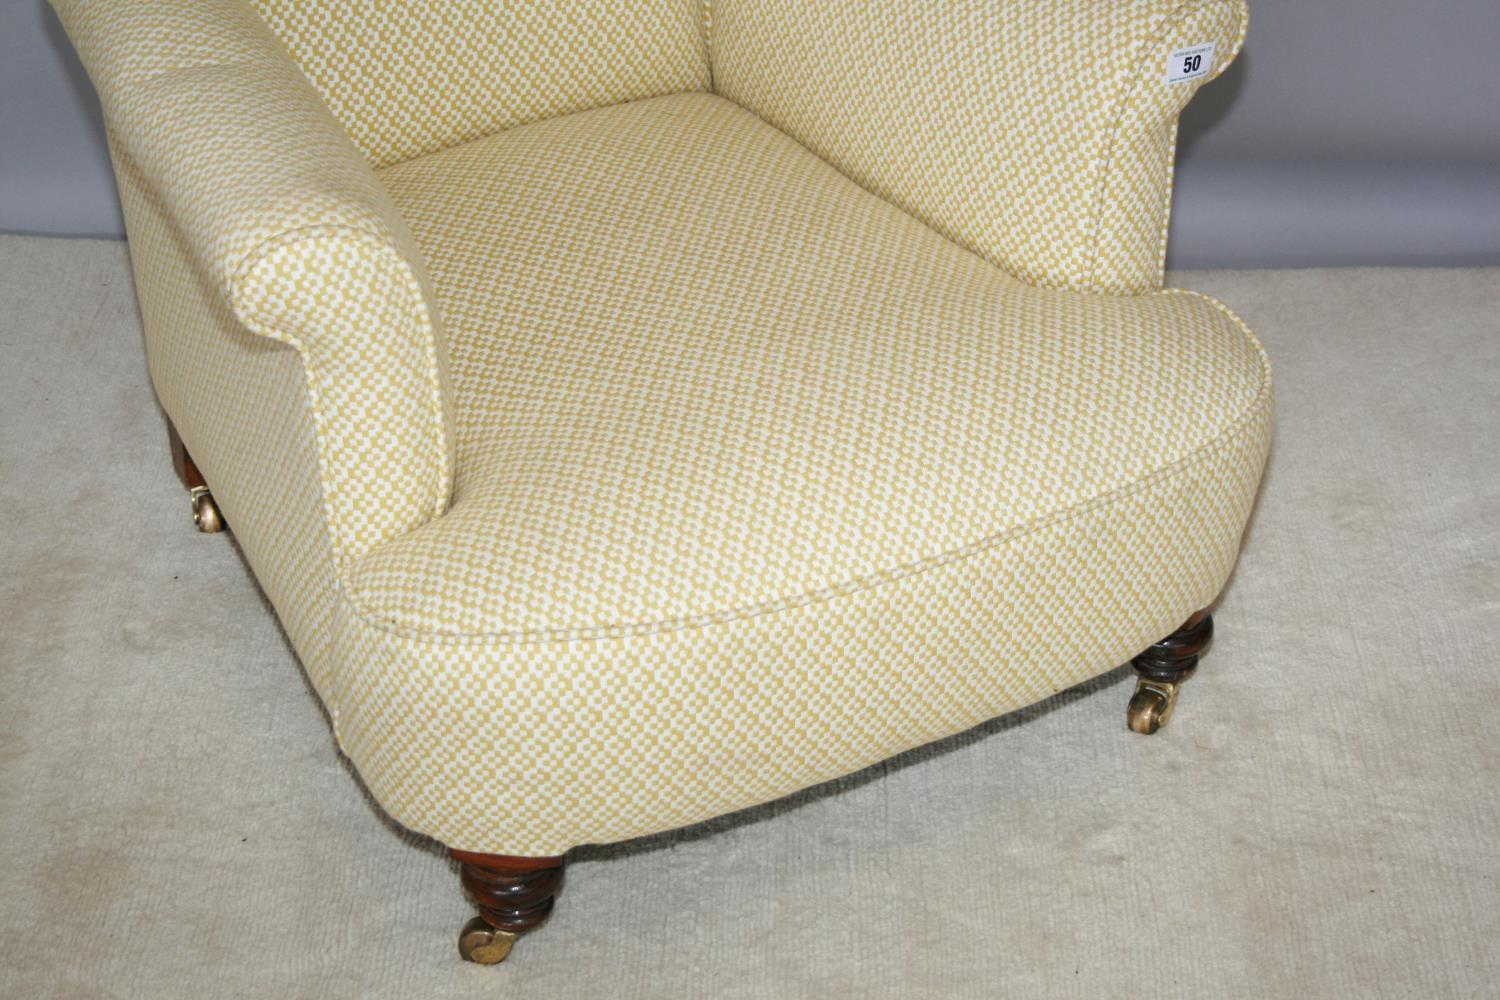 Edwardian upholstered occasional armchair on brass casters 75 W x 80 H x 90 D - Image 2 of 3